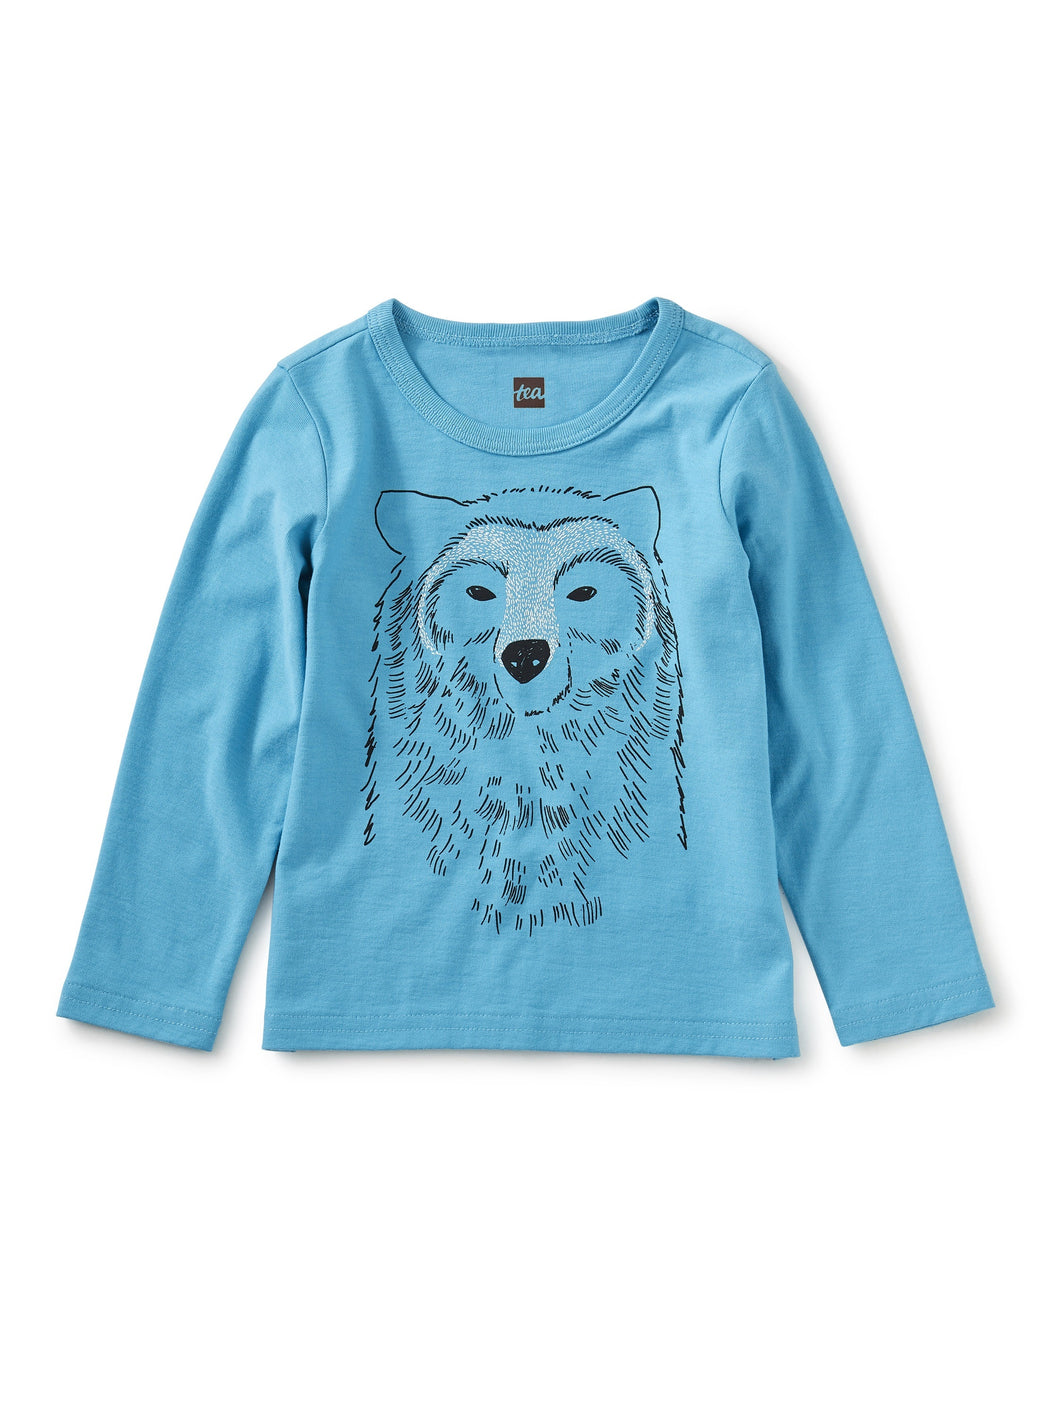 Tea Bear All Graphic Tee